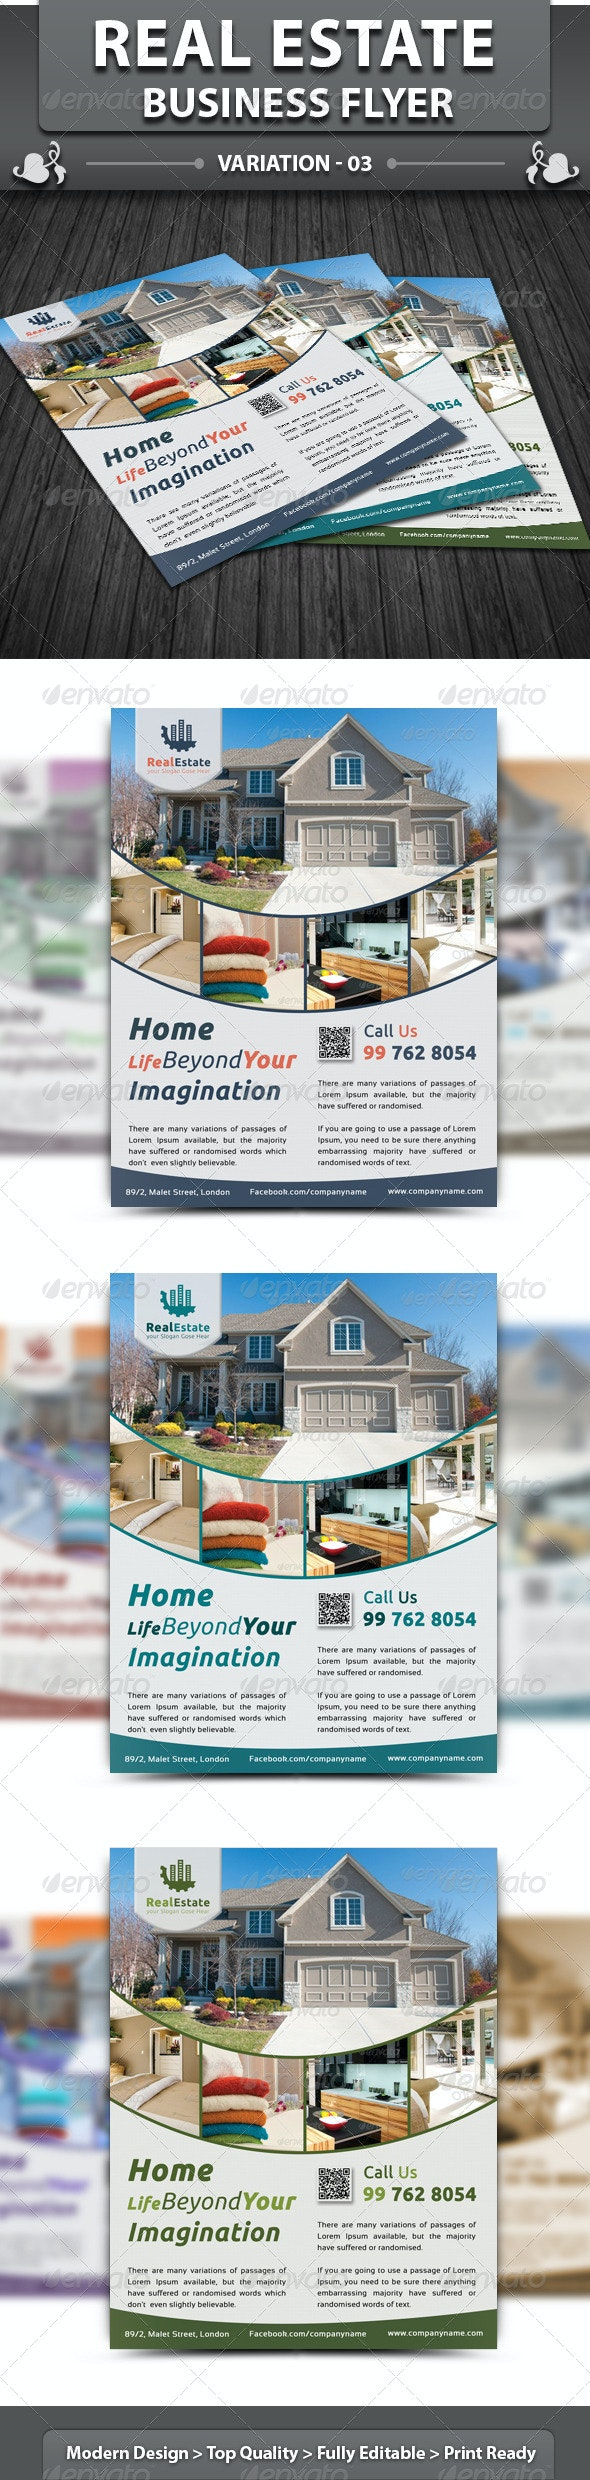 Real Estate Business Flyer | Volume 3 - Corporate Flyers